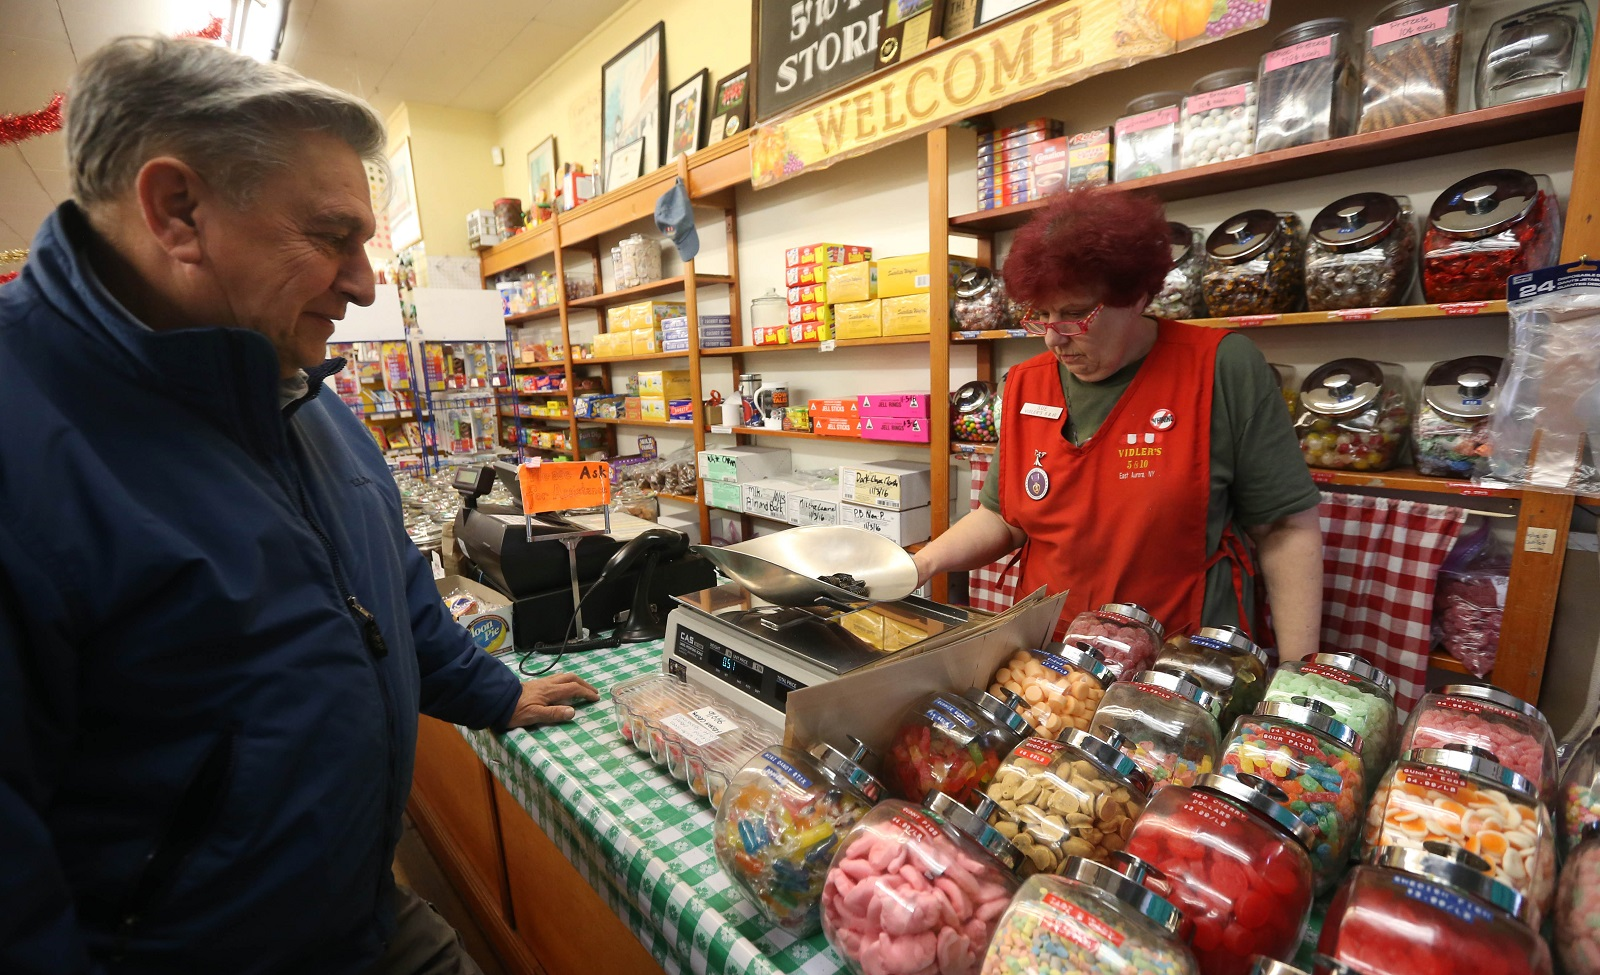 Clerk Sue Yoerk serves customer Dennis Caldwell, of Hamburg, at the candy counter. (Sharon Cantillon/Buffalo News)